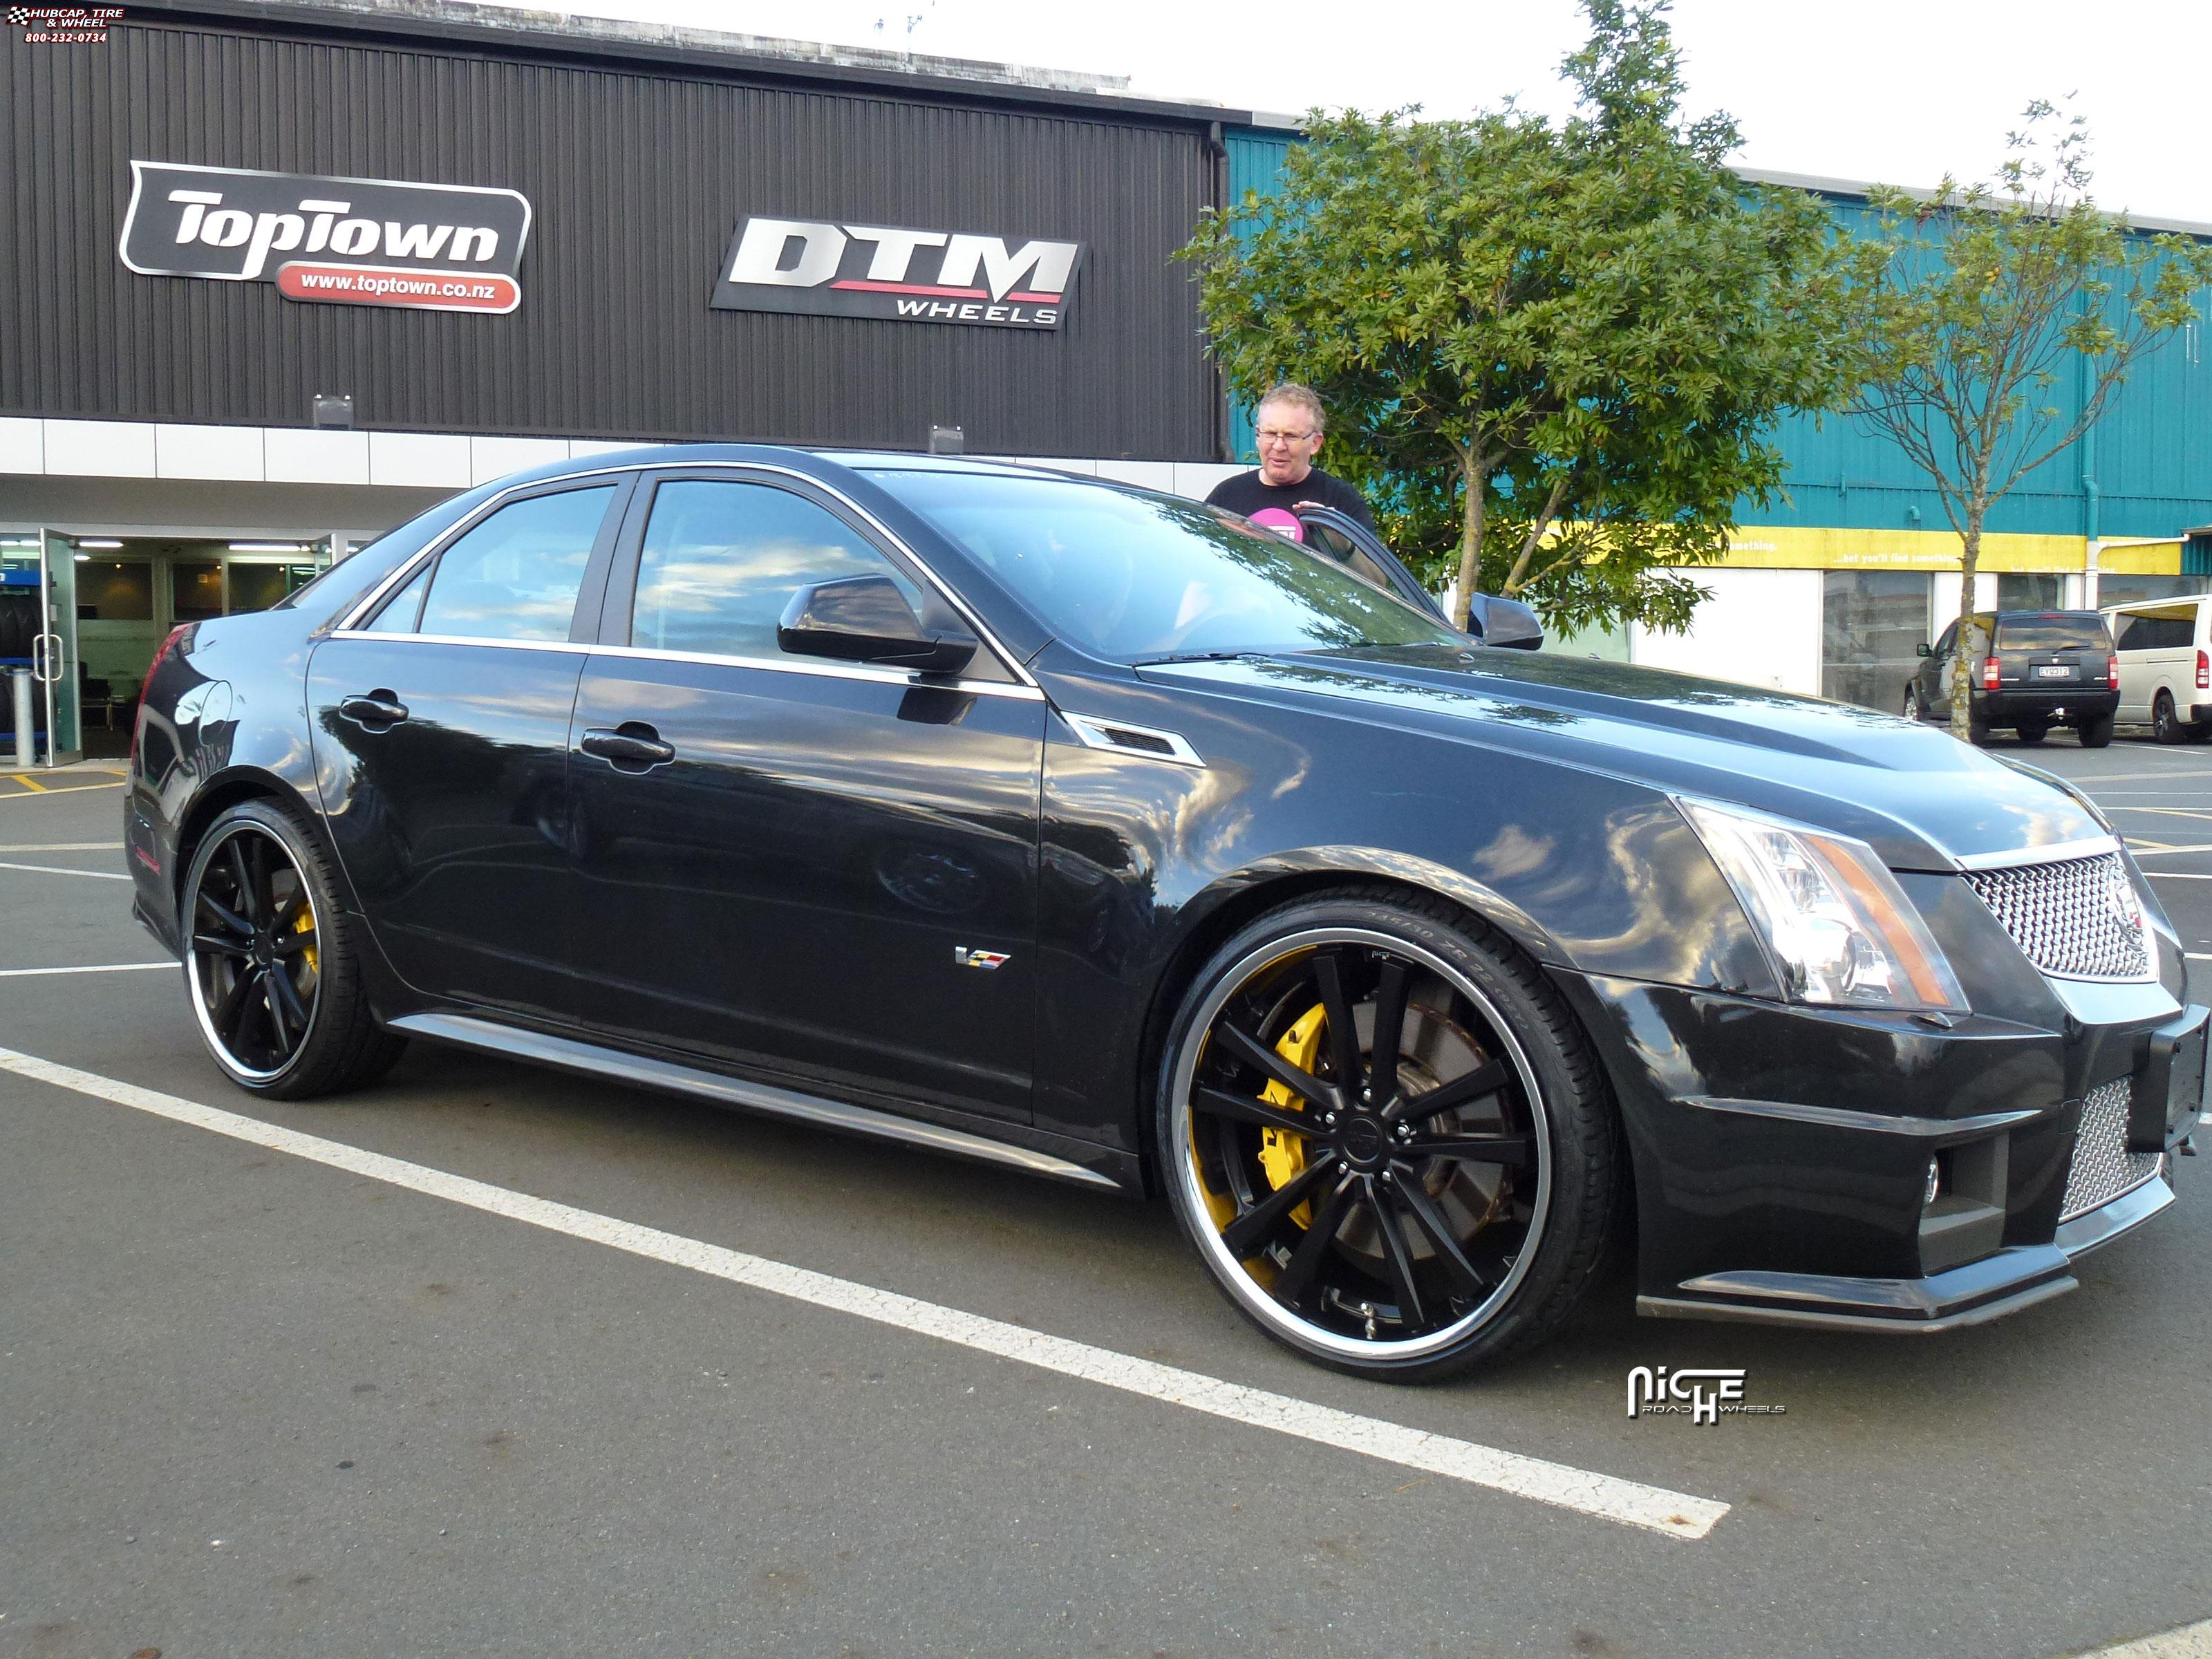 2014 Cadillac Cts Accessories >> Cadillac CTS Niche Concourse - M885 Wheels Matte Black/Chrome Stainless